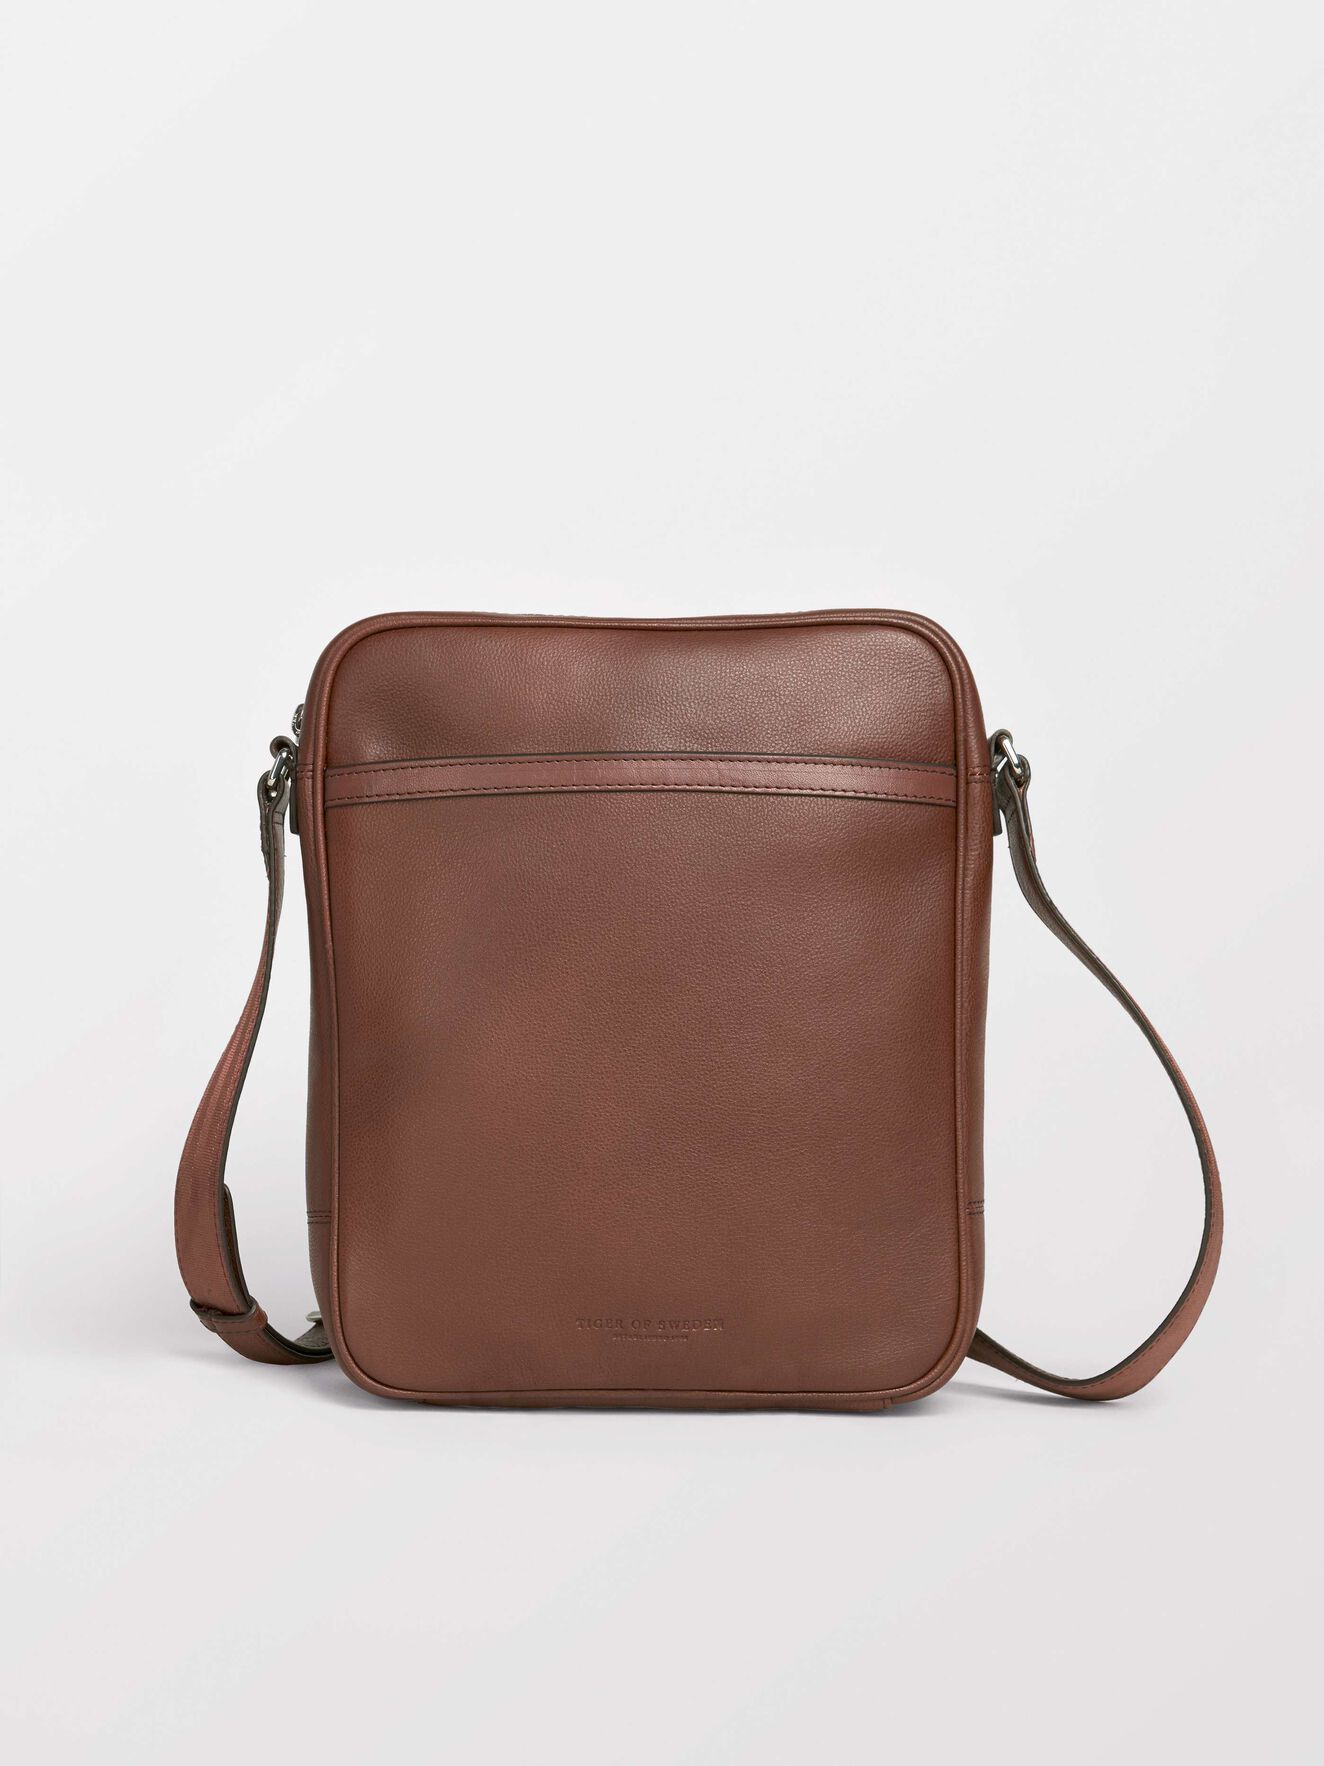 Marqo Bag in Medium Brown from Tiger of Sweden